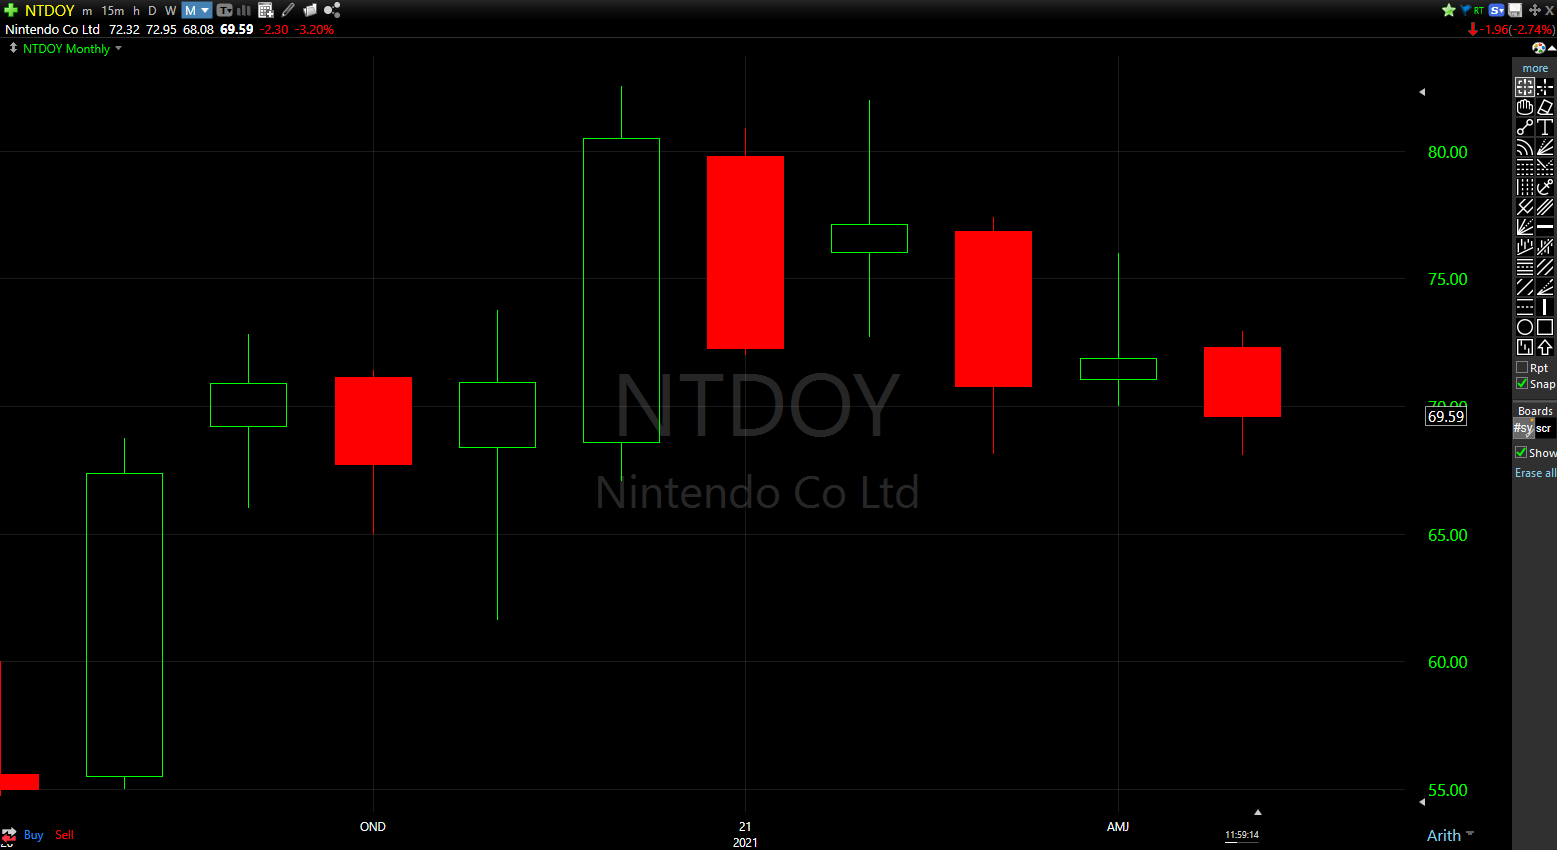 After trading inside of the previous month's range, NIntendo shares have an active sell signal below $70.01.